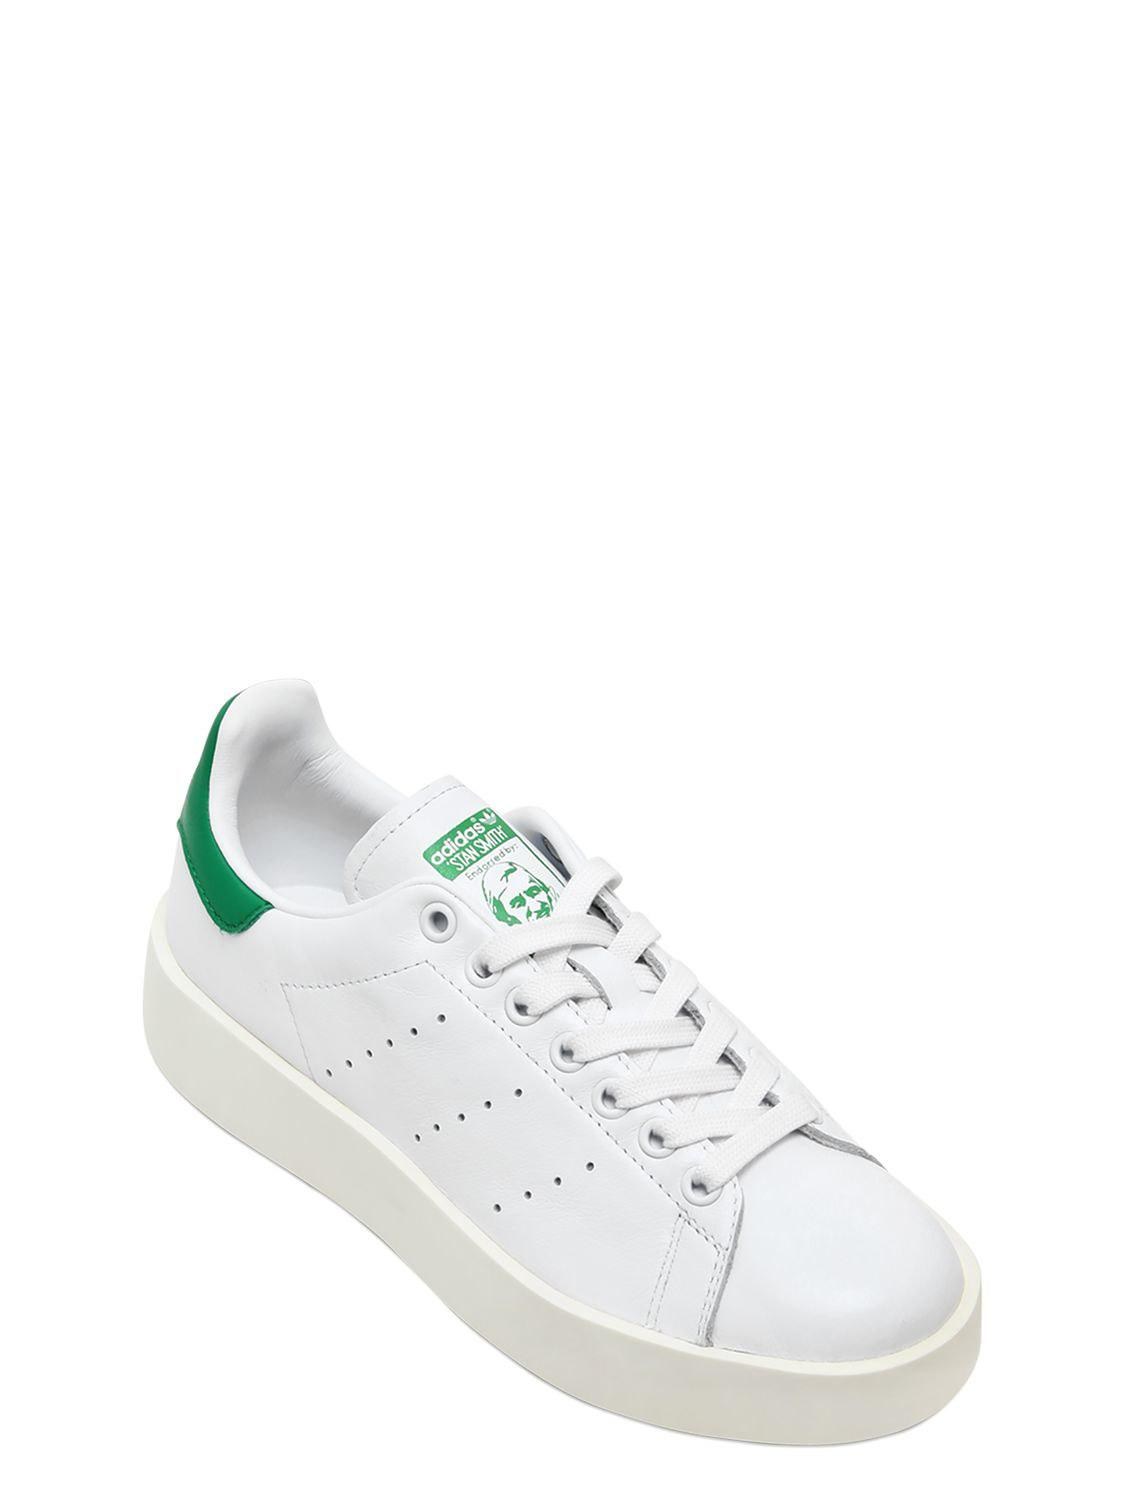 Adidas Originals - White Stan Smith Bold Sneakers - Lyst. View fullscreen 3b8b2f3eb3